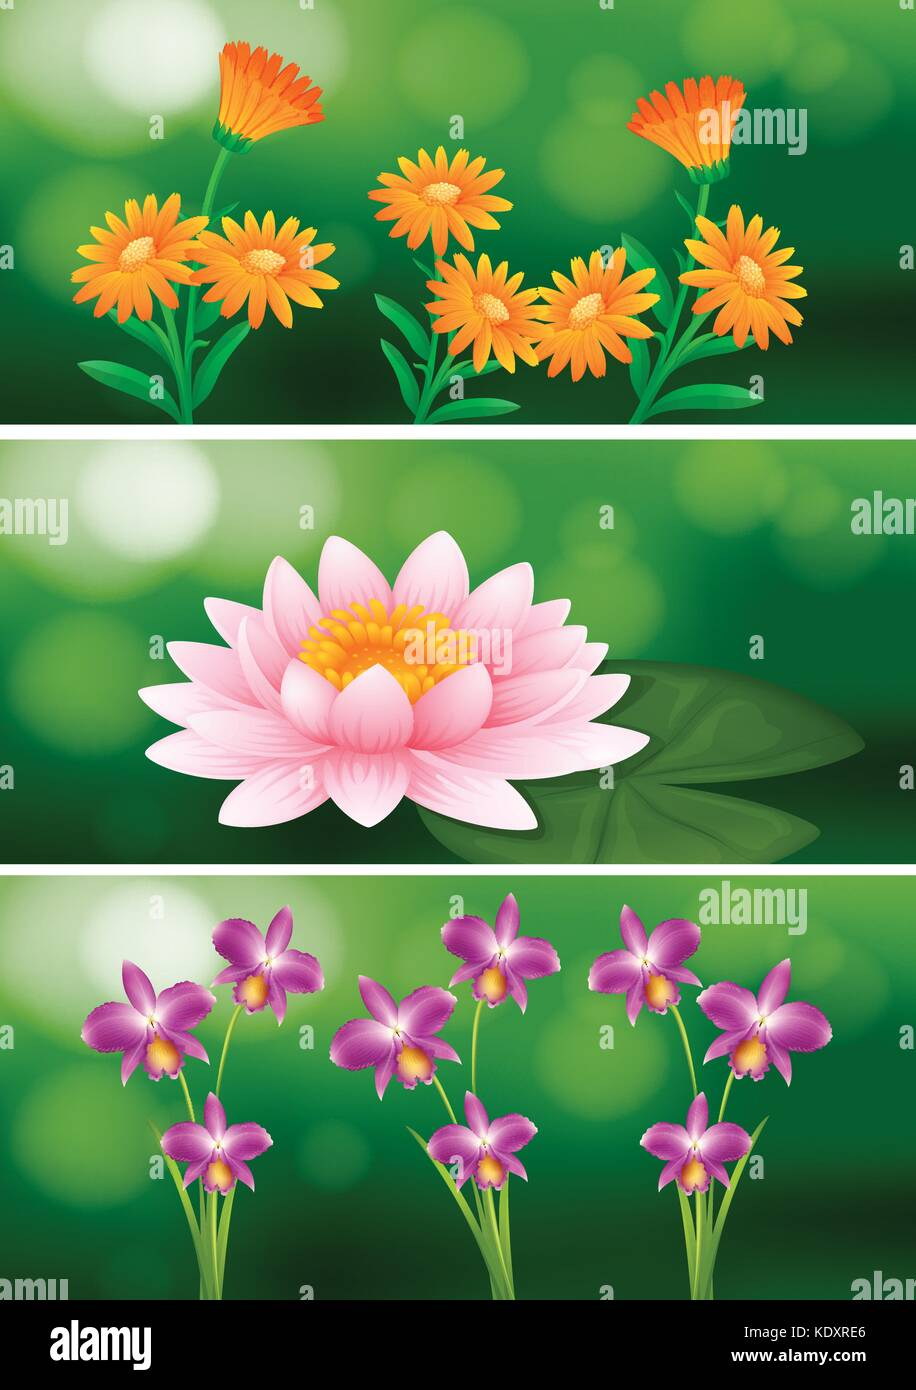 Background Design With Different Types Of Flowers Illustration Stock